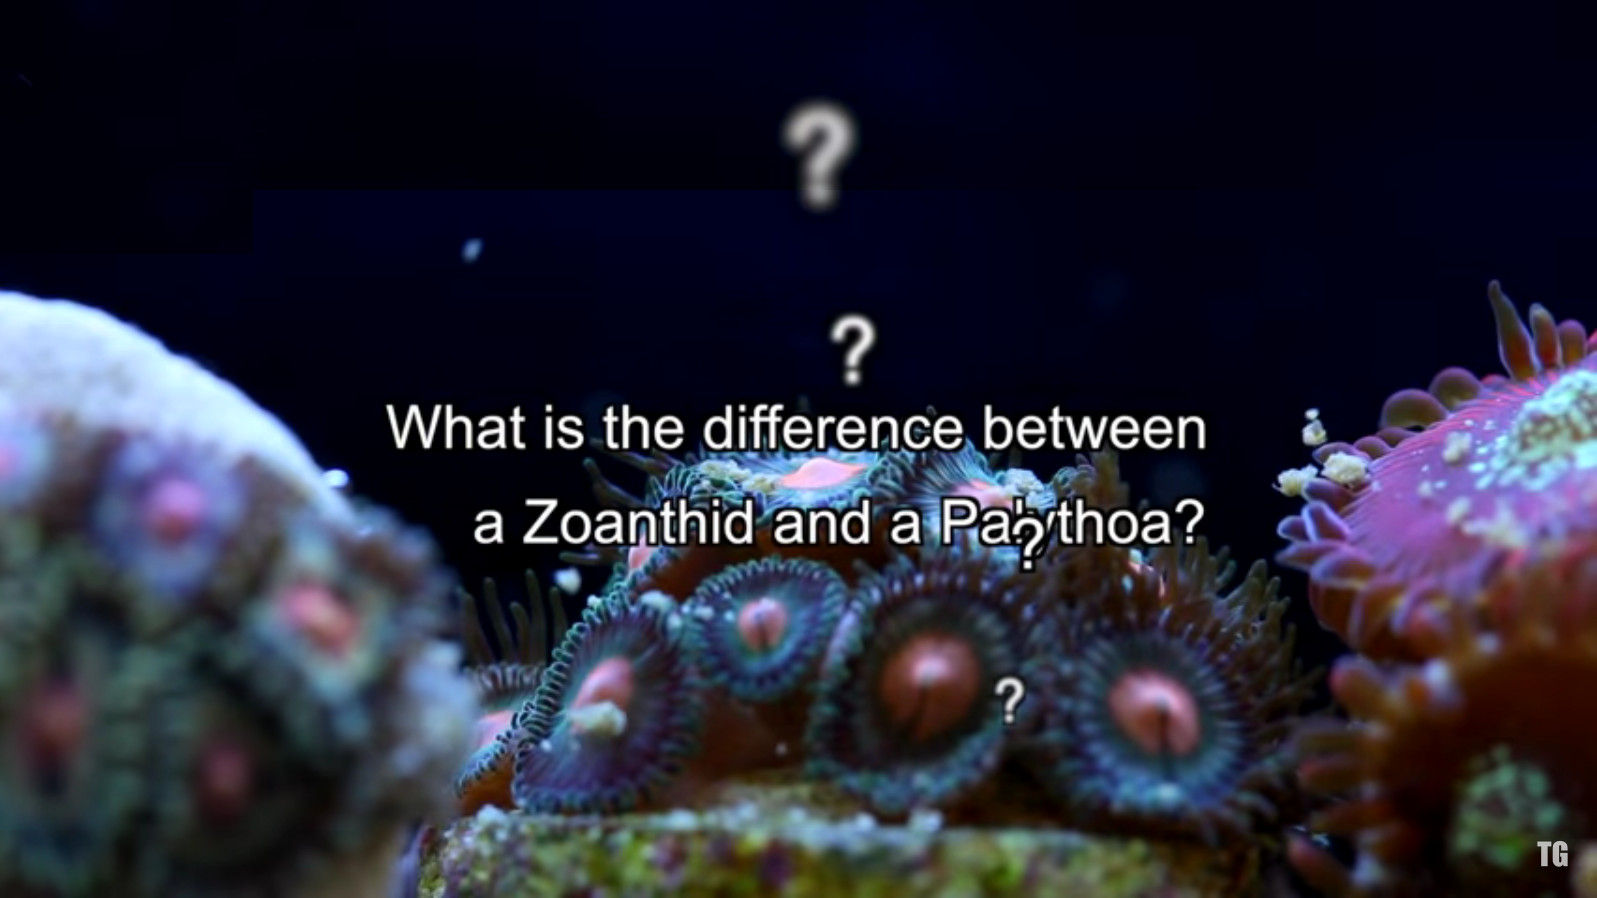 Zoanthid and Palythoa identification and taxonomy